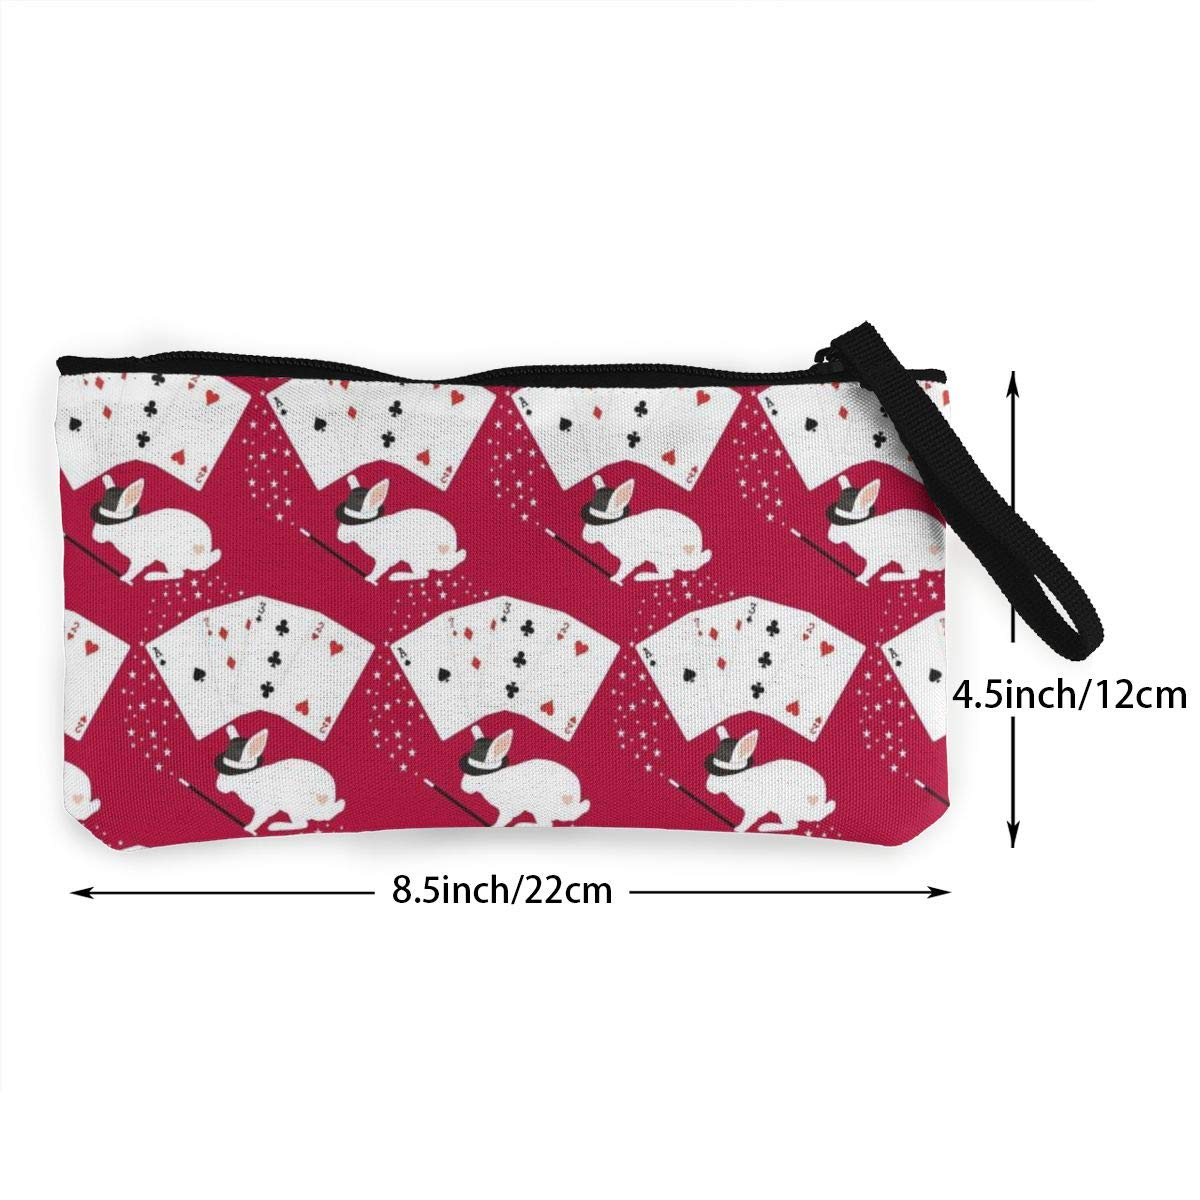 Coin Pouch Rabbit In Hat Does Card Tricks Canvas Coin Purse Cellphone Card Bag With Handle And Zipper